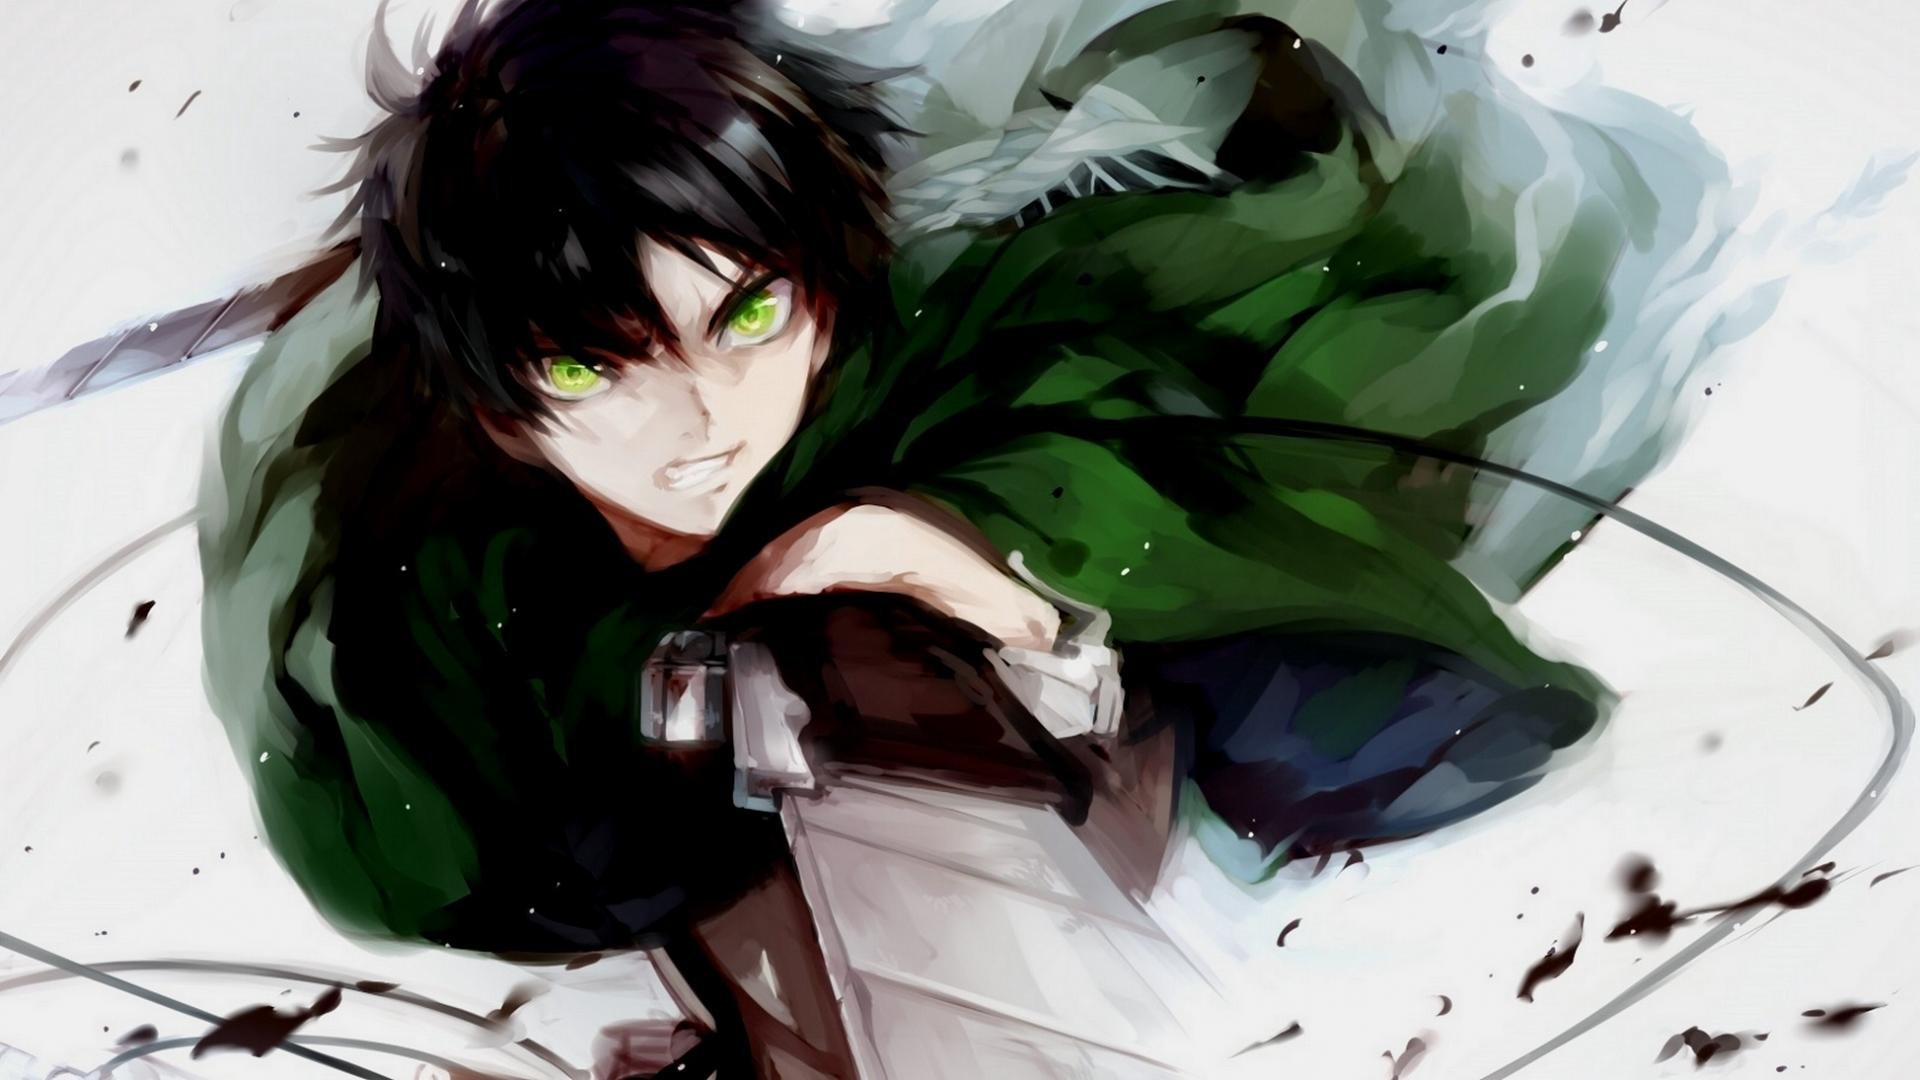 Free Download Eren Yeager Wallpaper Id 206442 Hd 1080p For Desktop